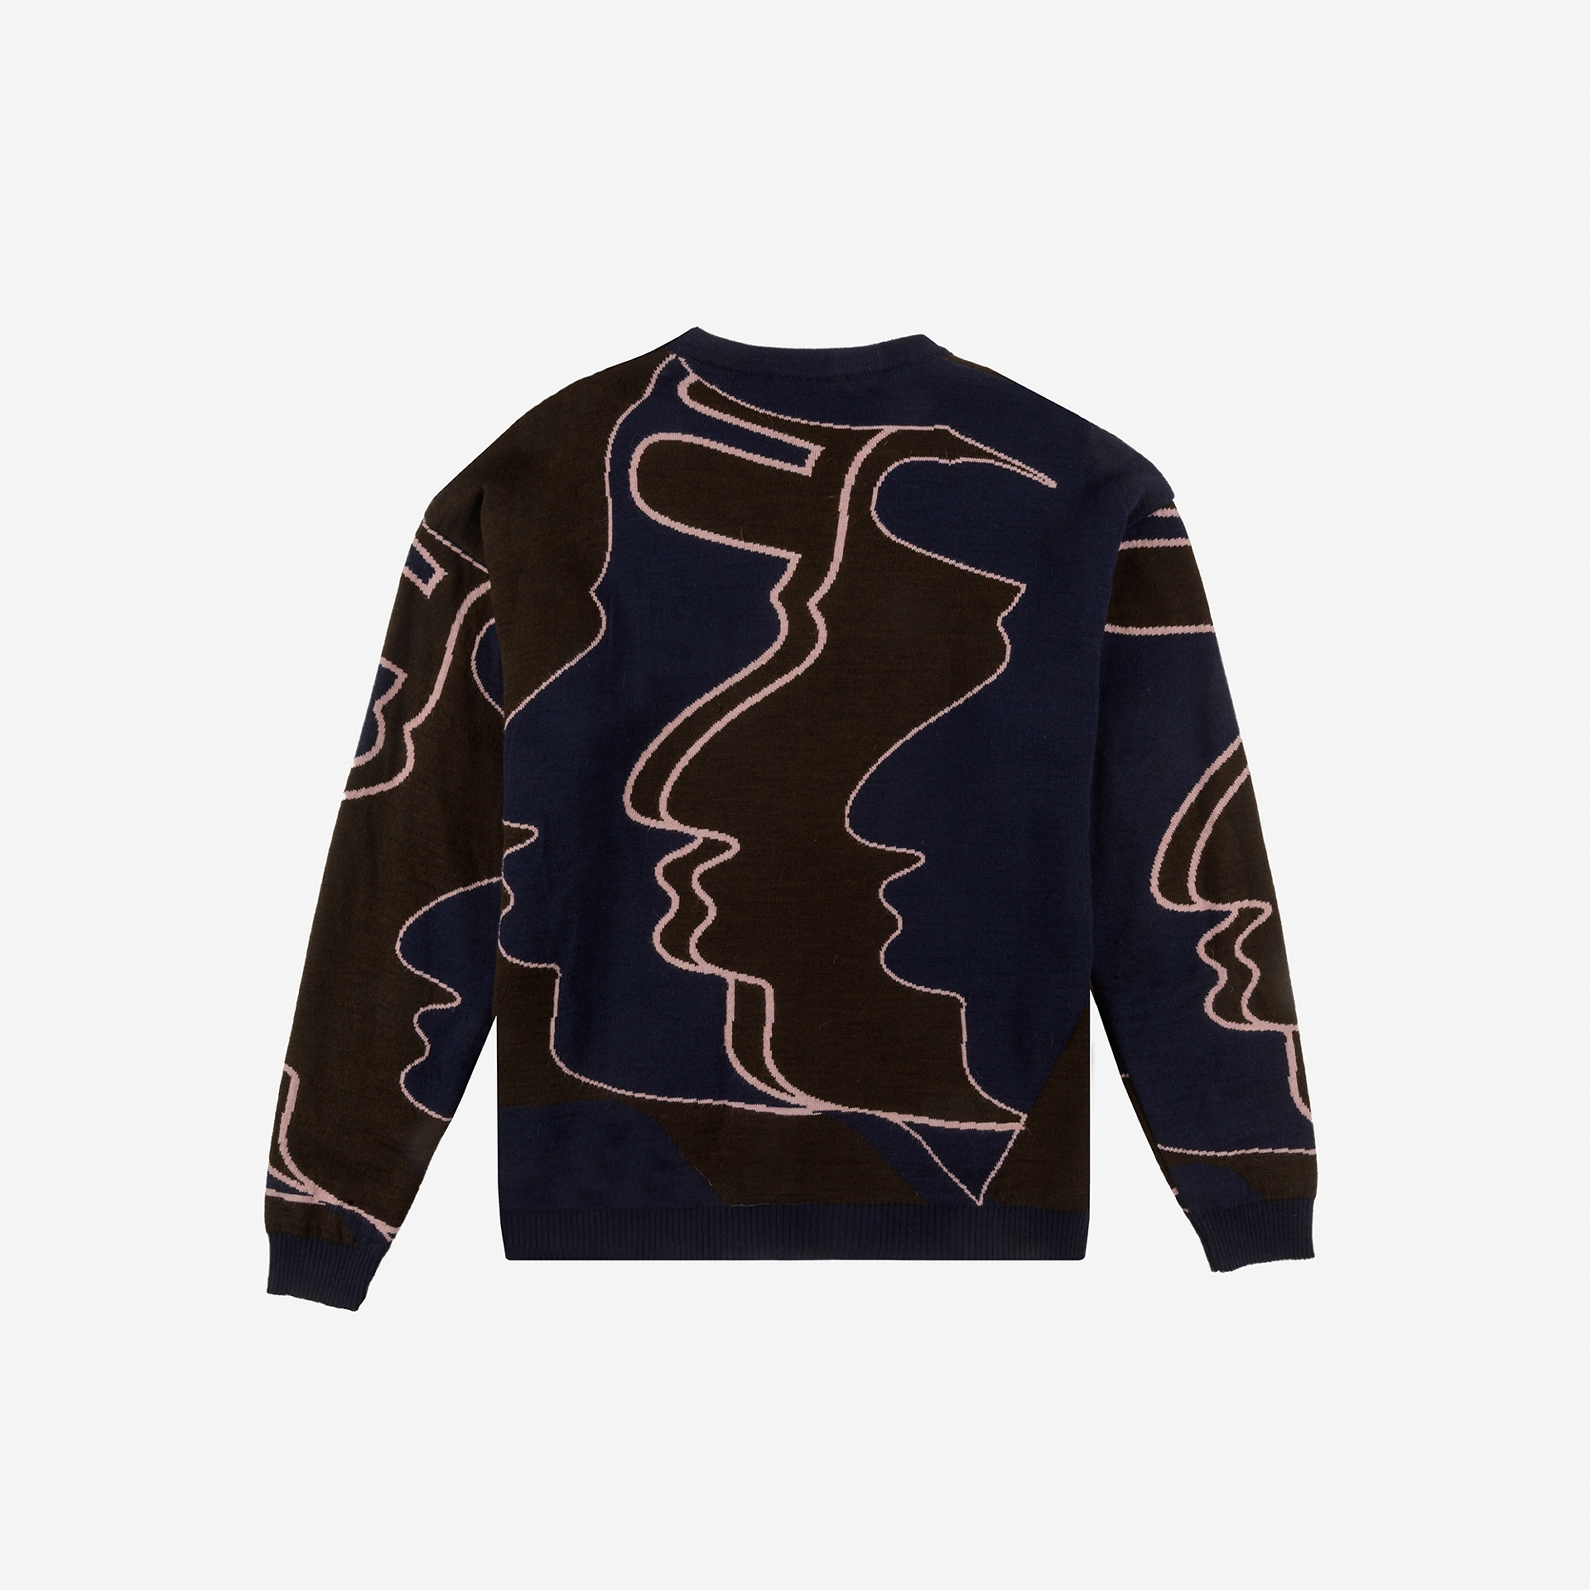 【PAS DE MER/パドゥメ】FOOTBALL JAQUARD KNIT ニットセーター / PATTERN